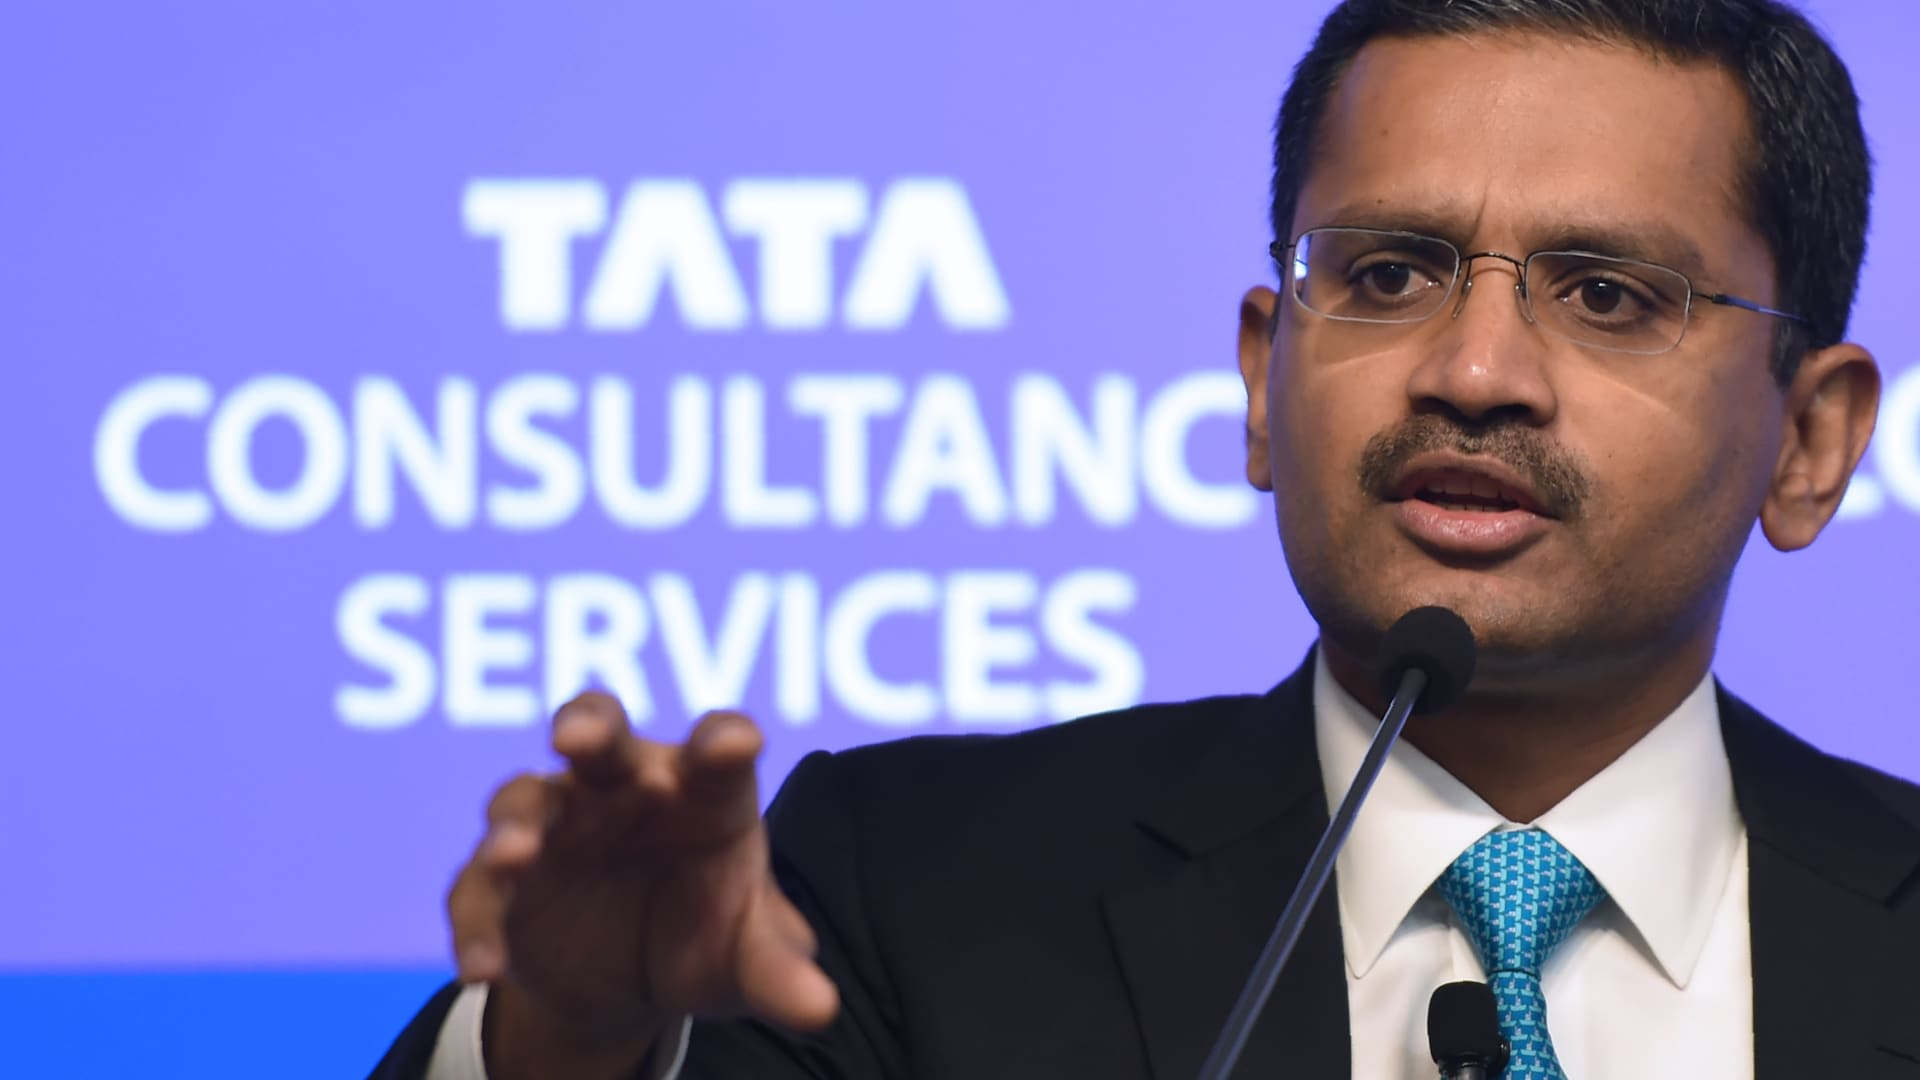 India's Tata Consultancy Services (TCS) CEO and Managing Director Rajesh Gopinathan speaks during a news conference after the announcement of the financial results of the company in Mumbai on April 19, 2018.